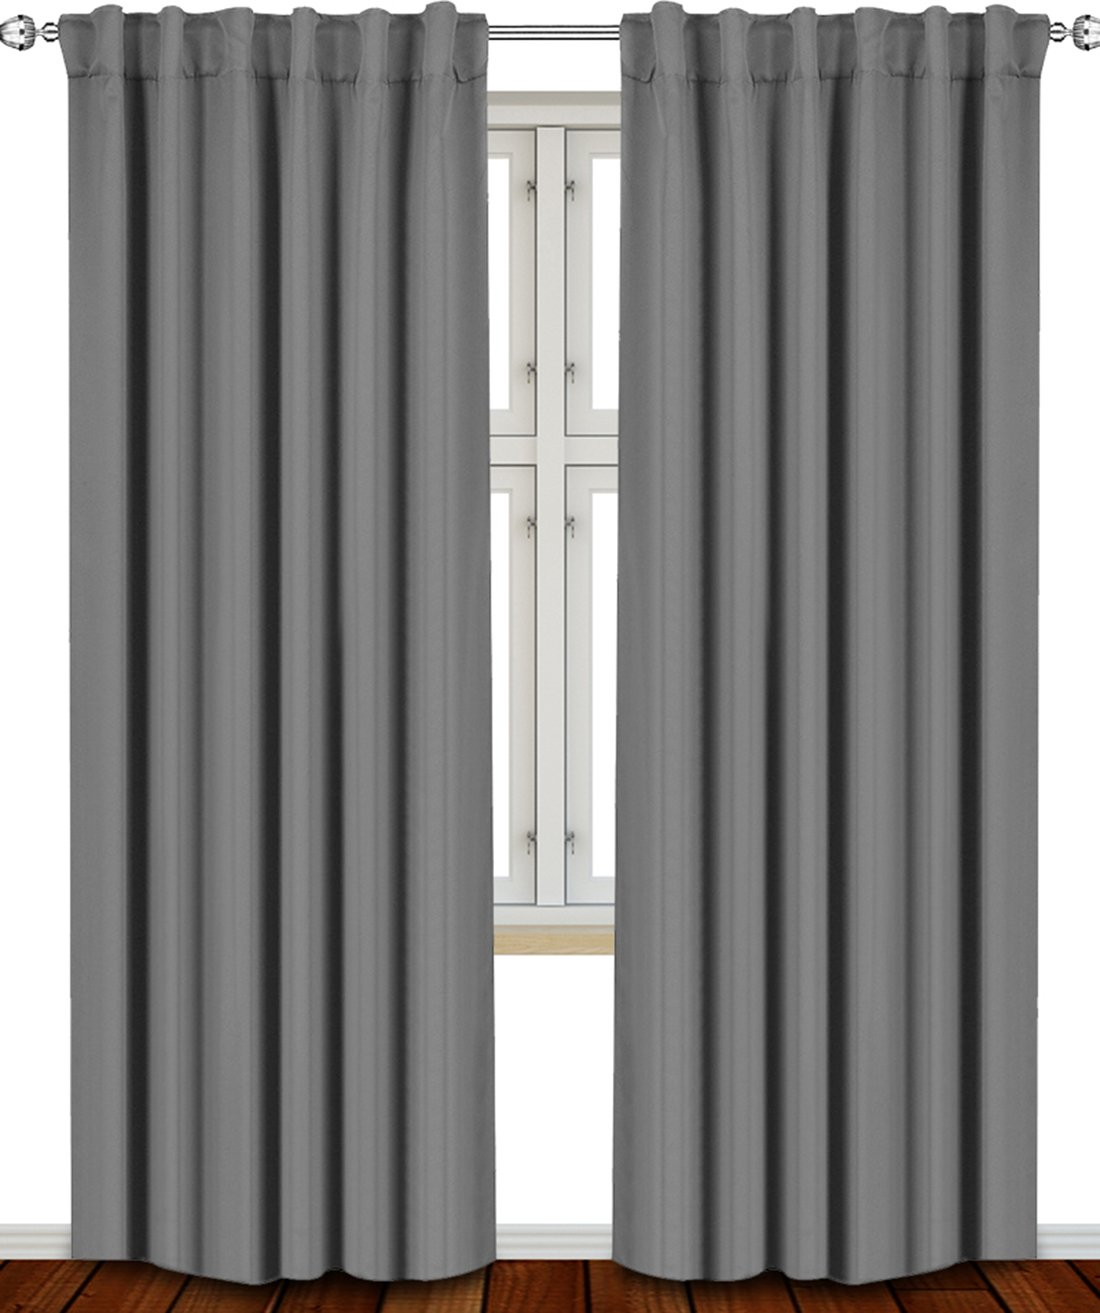 Blackout Room Darkening Curtains Window Panel Drapes Grey - 2 Panel Set